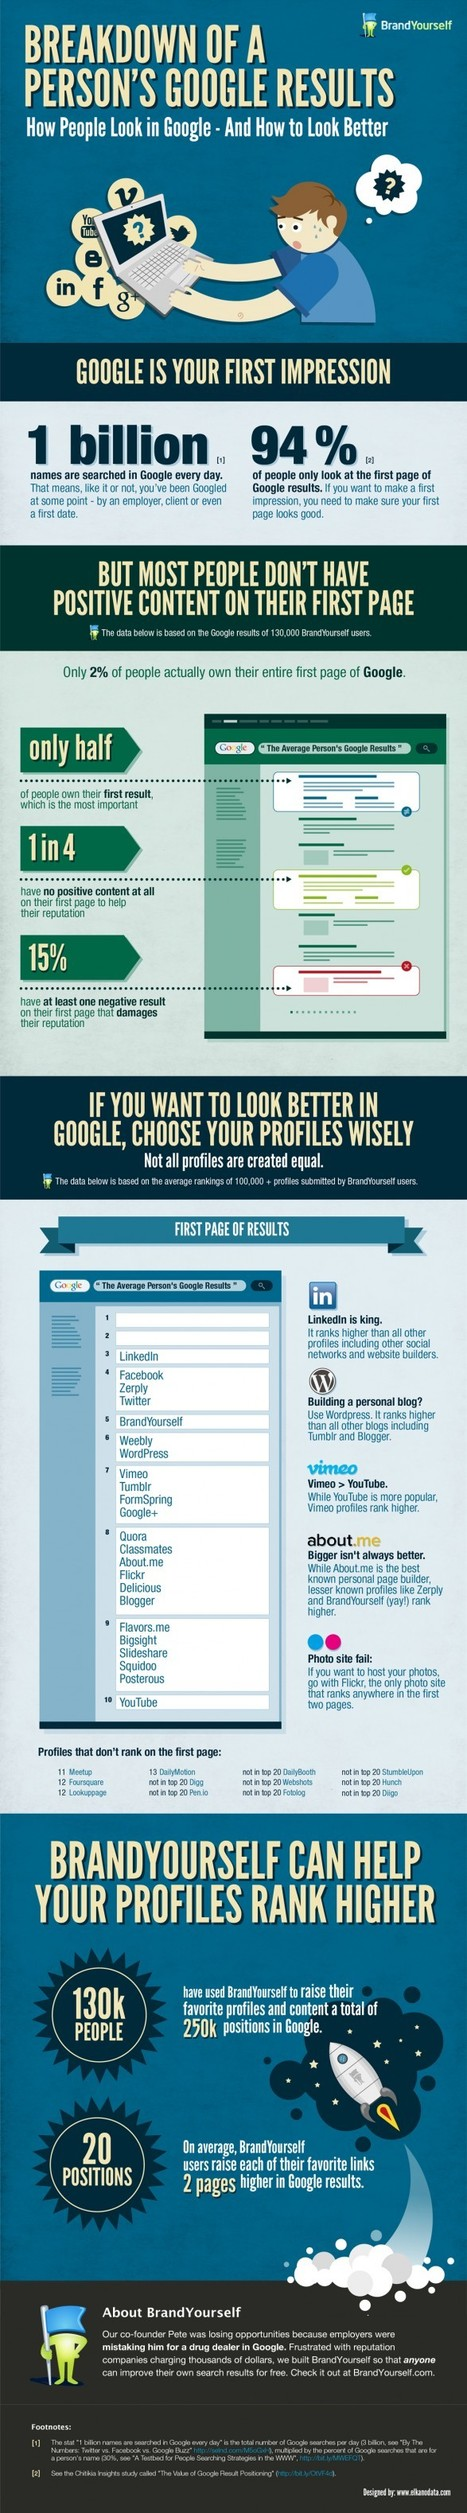 Breakdown of a Person's Google Results | Visual.ly | Social Media and Web Infographics hh | Scoop.it